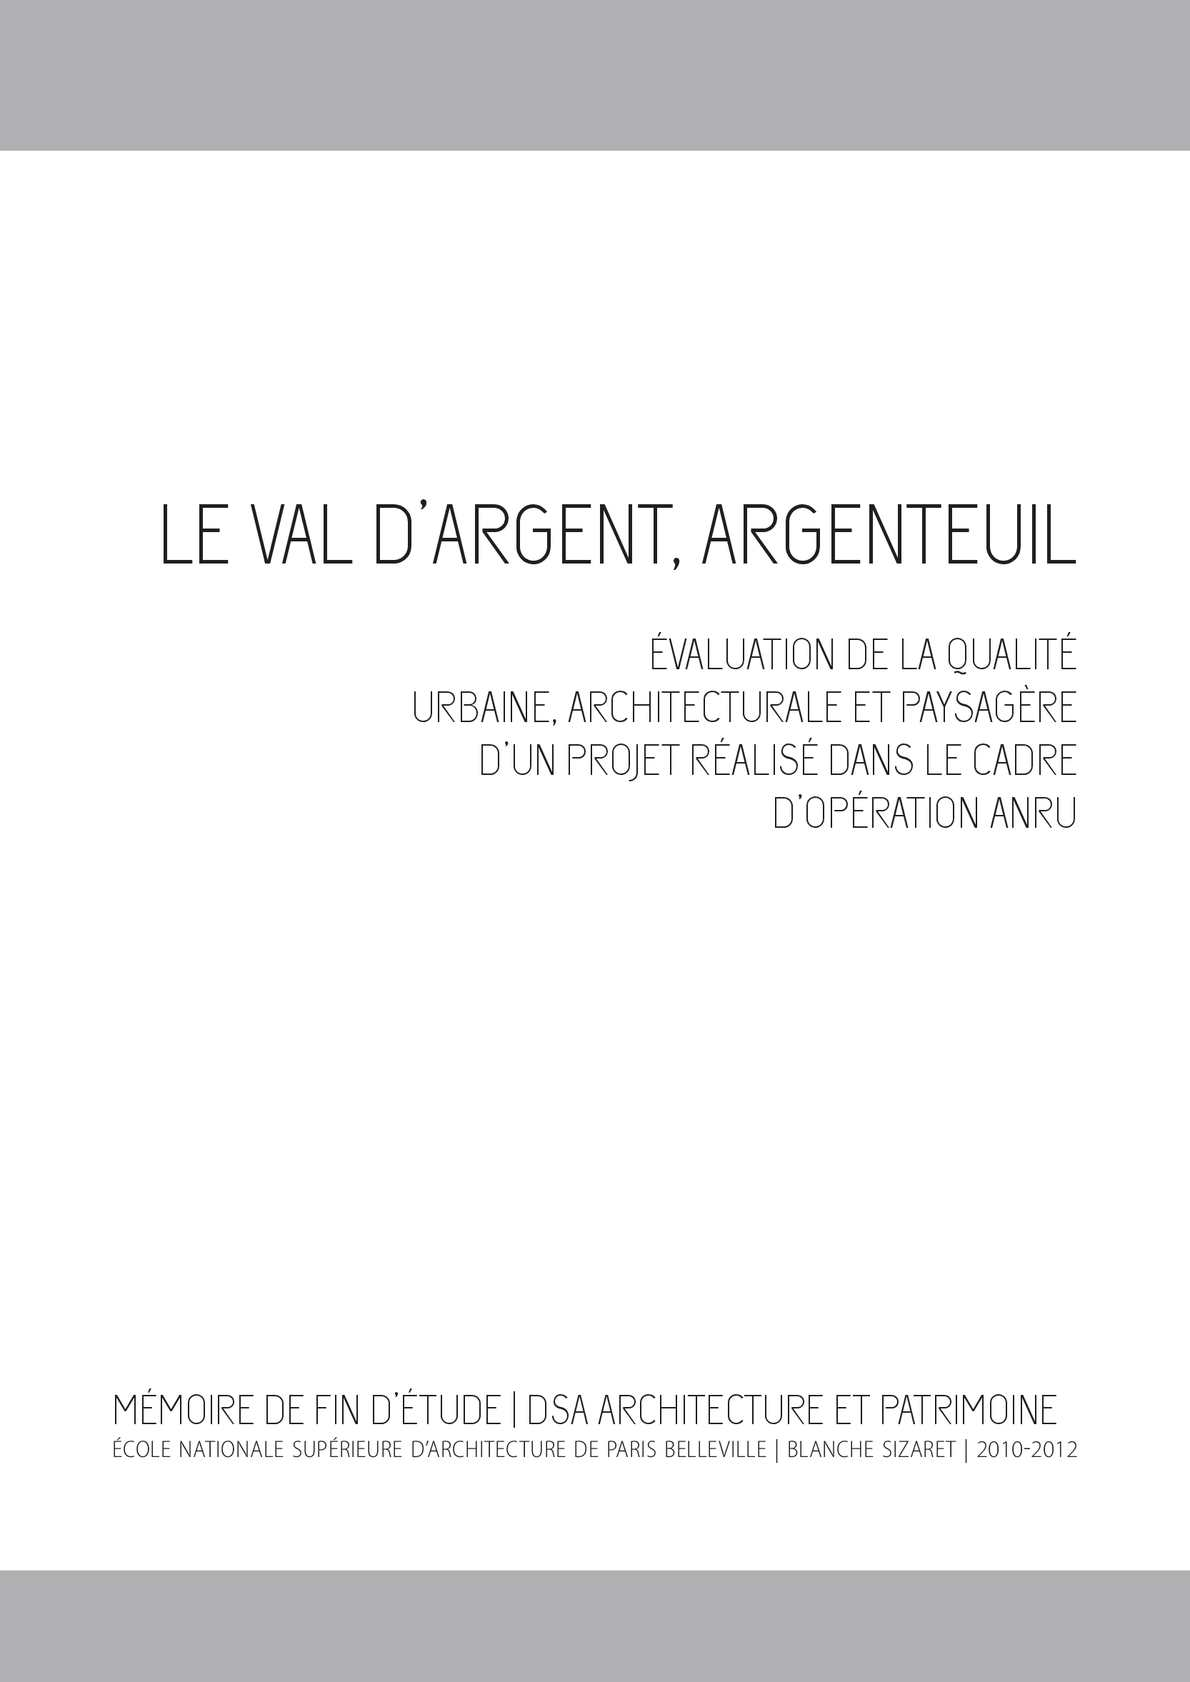 calam o memoire dsa le val d argent valuation de la On qualite architecturale definition